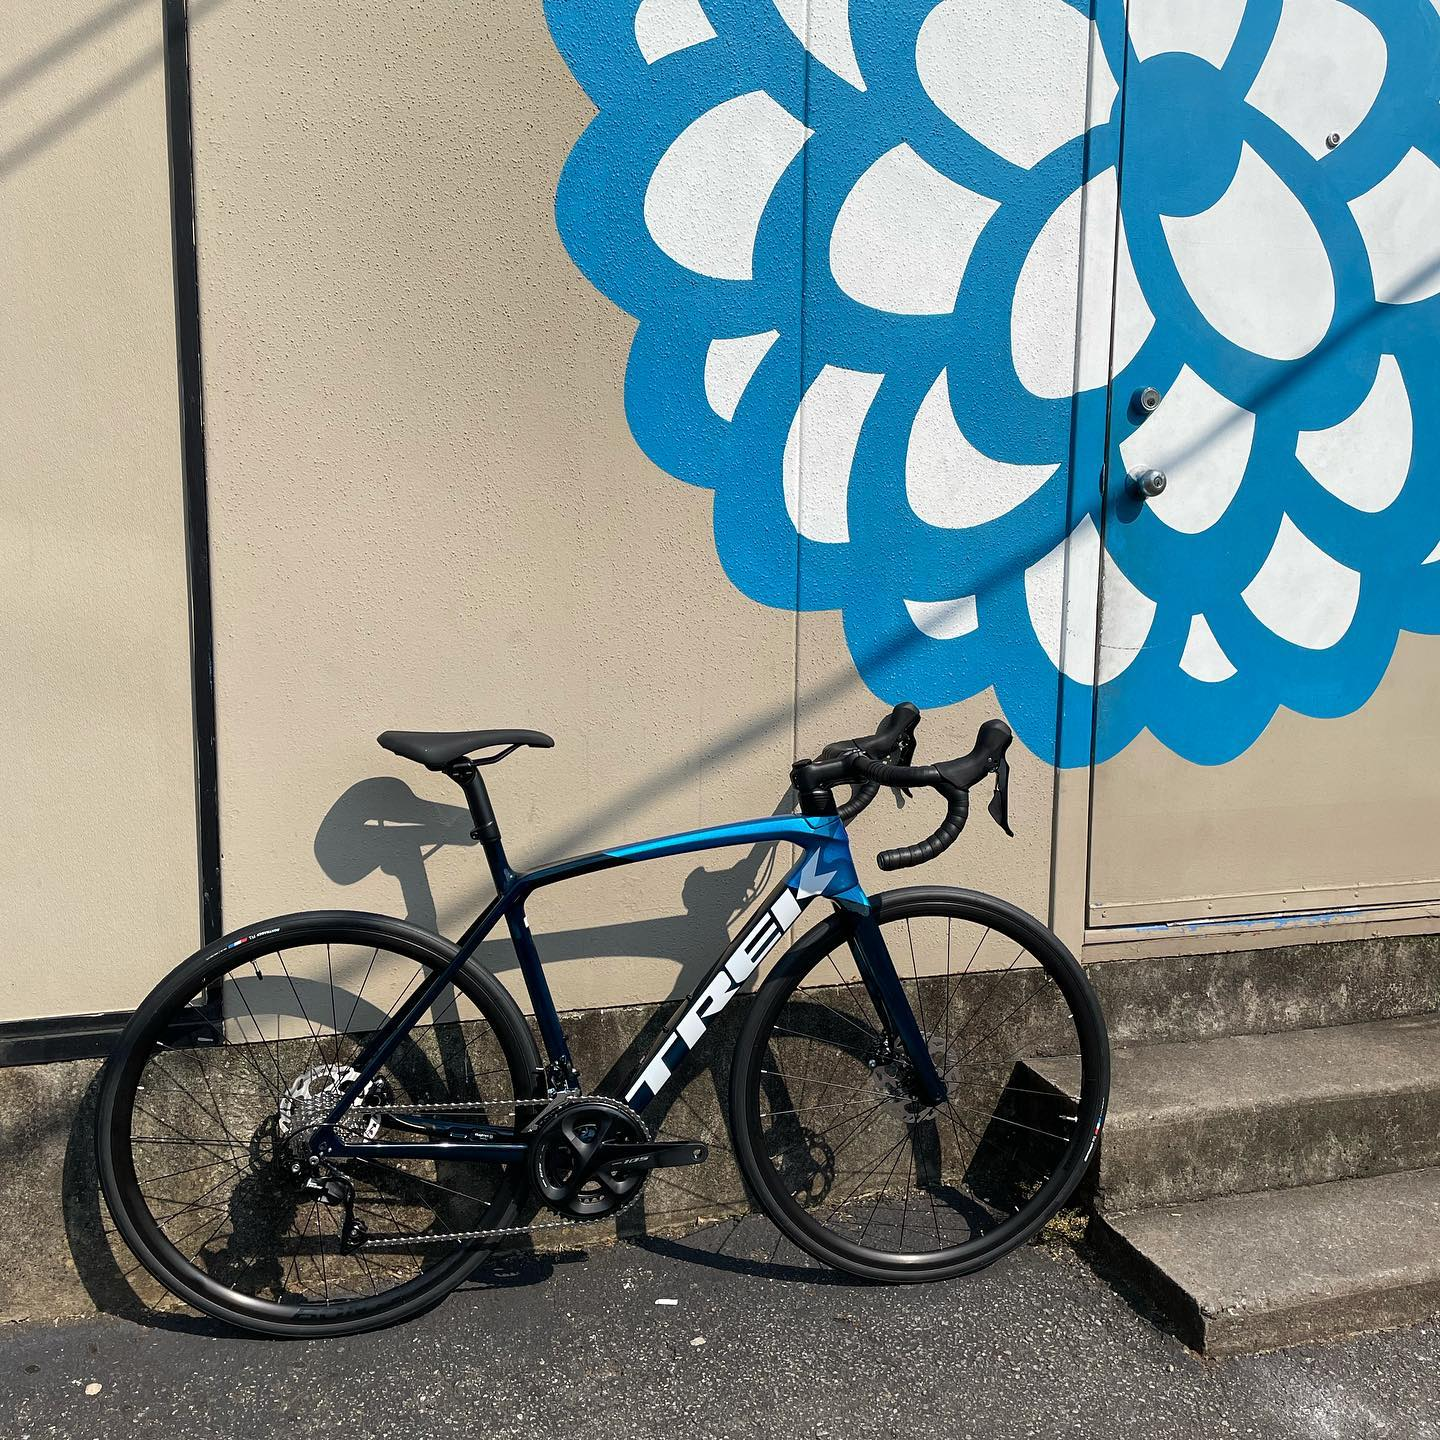 This new beauty came in yesterday! Trek Emonda SL5 54cm. Come in for a test ride. #trekbikes